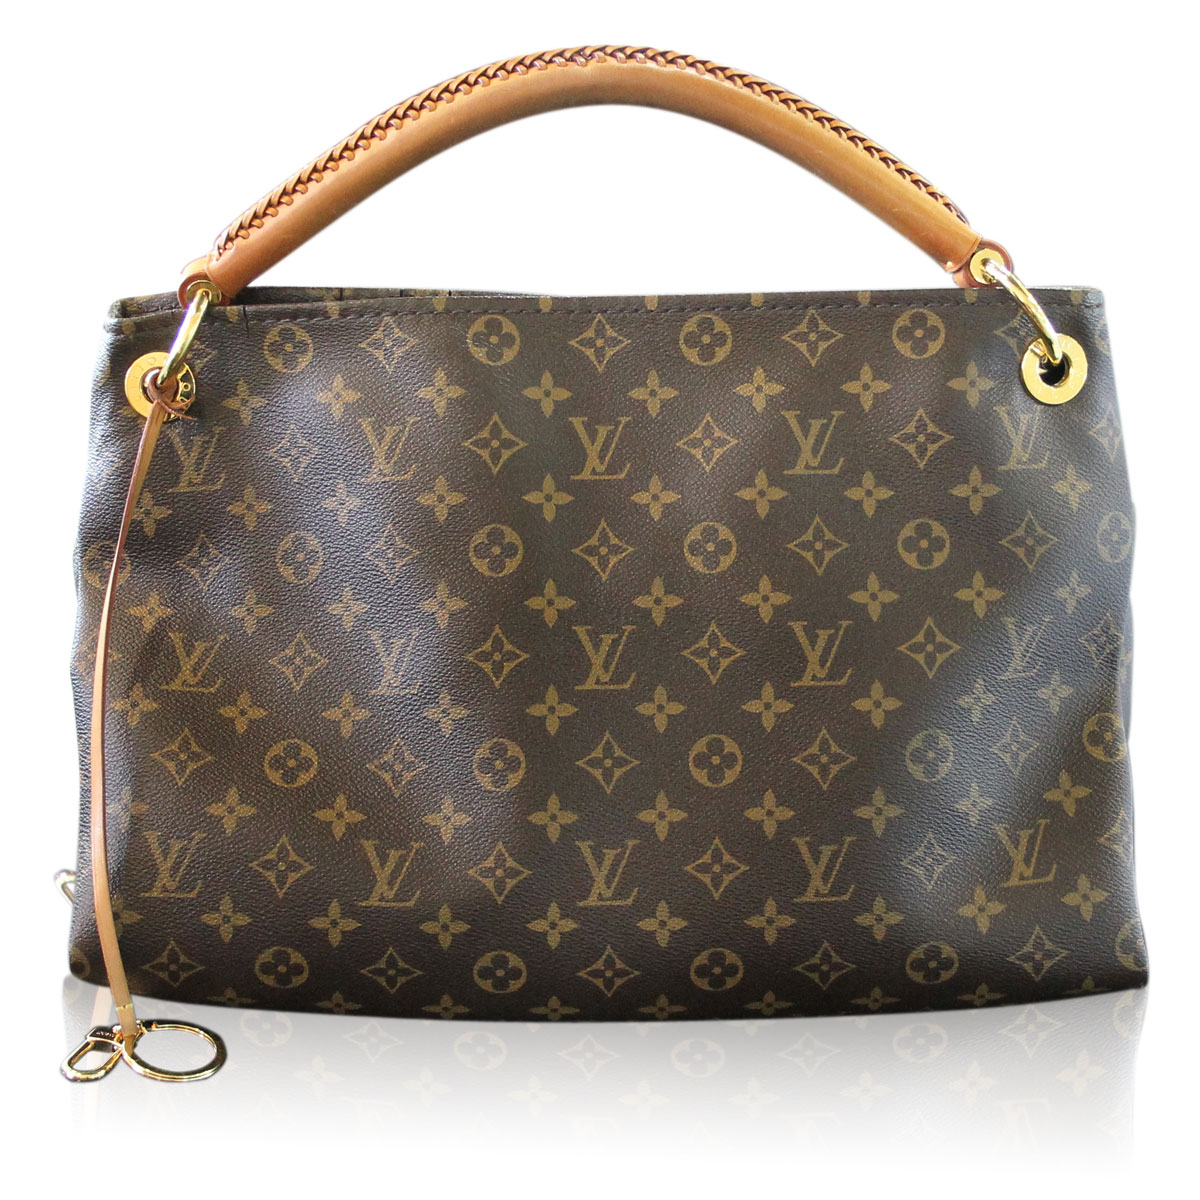 Louis Vuitton Sdy 30 Handbag Galleries